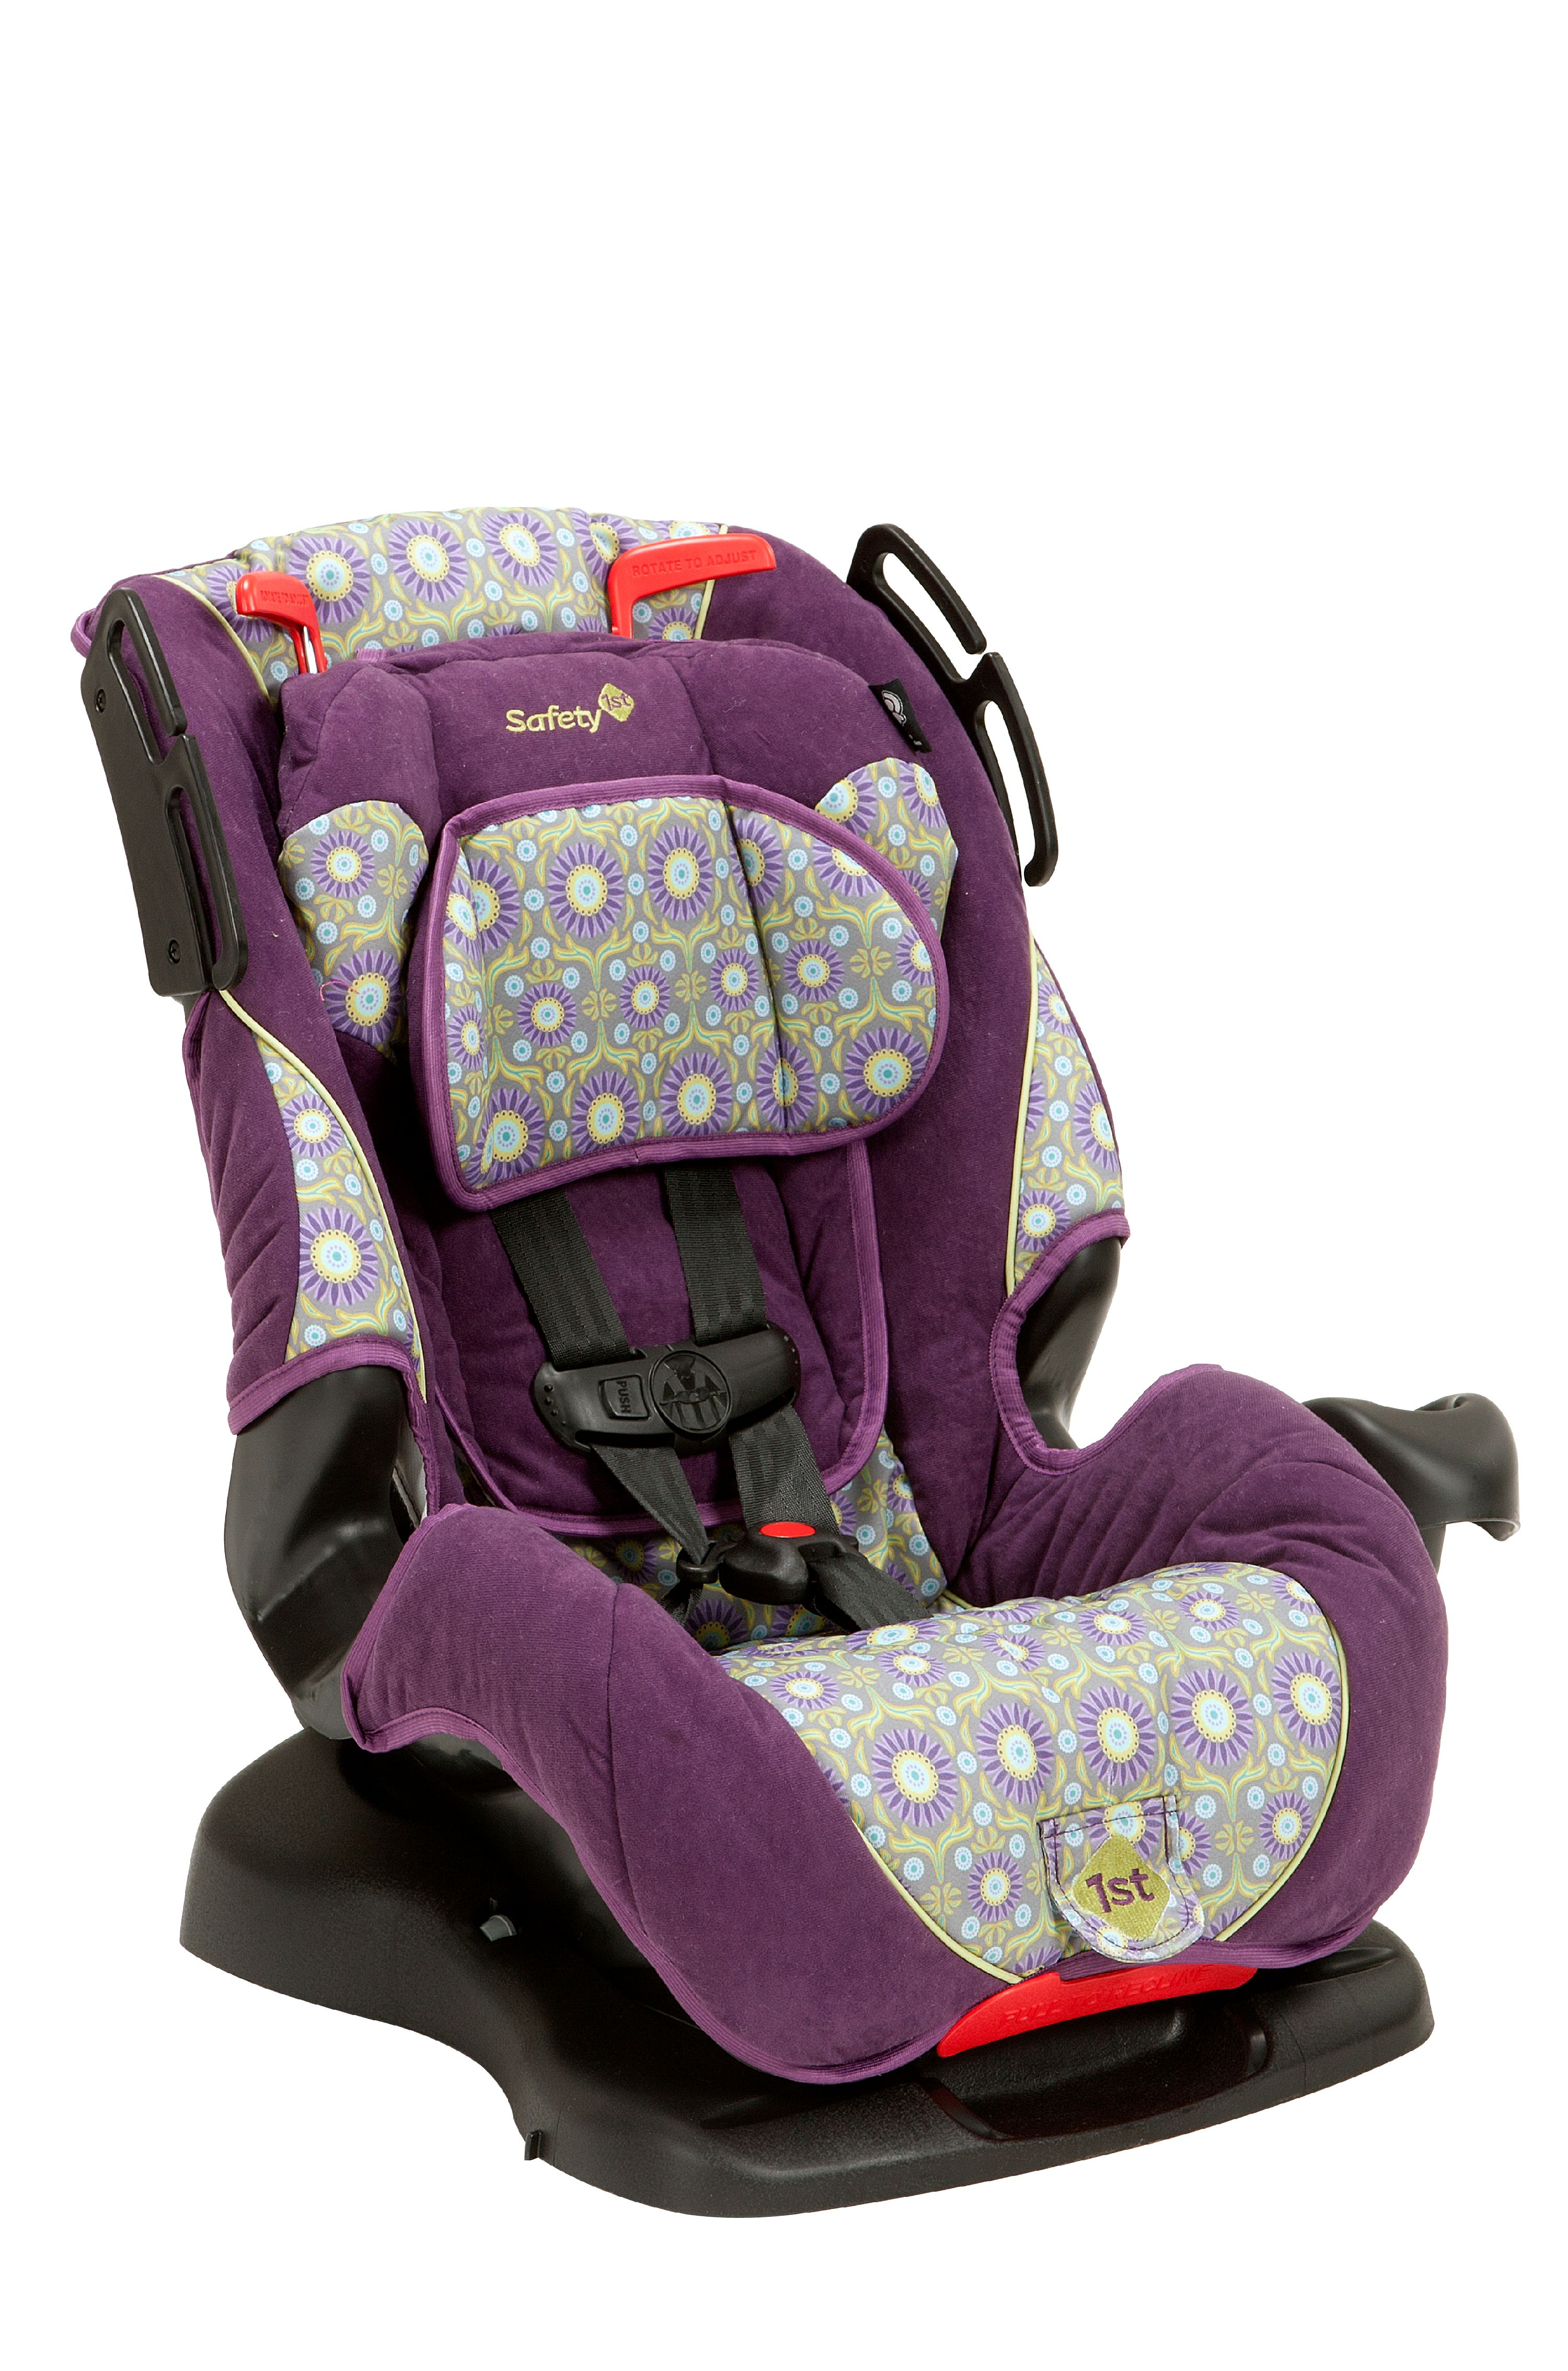 One Sport Convertible Car Seat